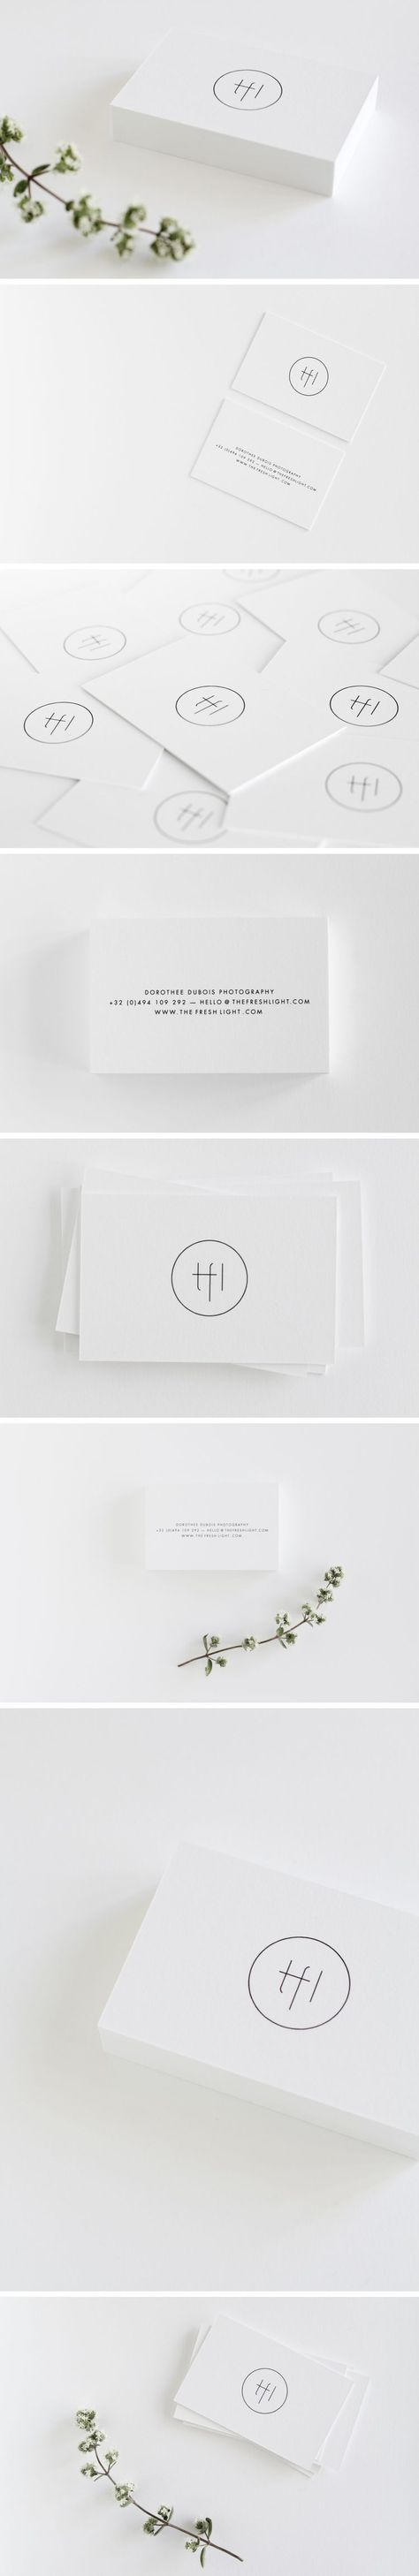 75 Minimal Business Cards Designs for Inspiration | Minimal business ...